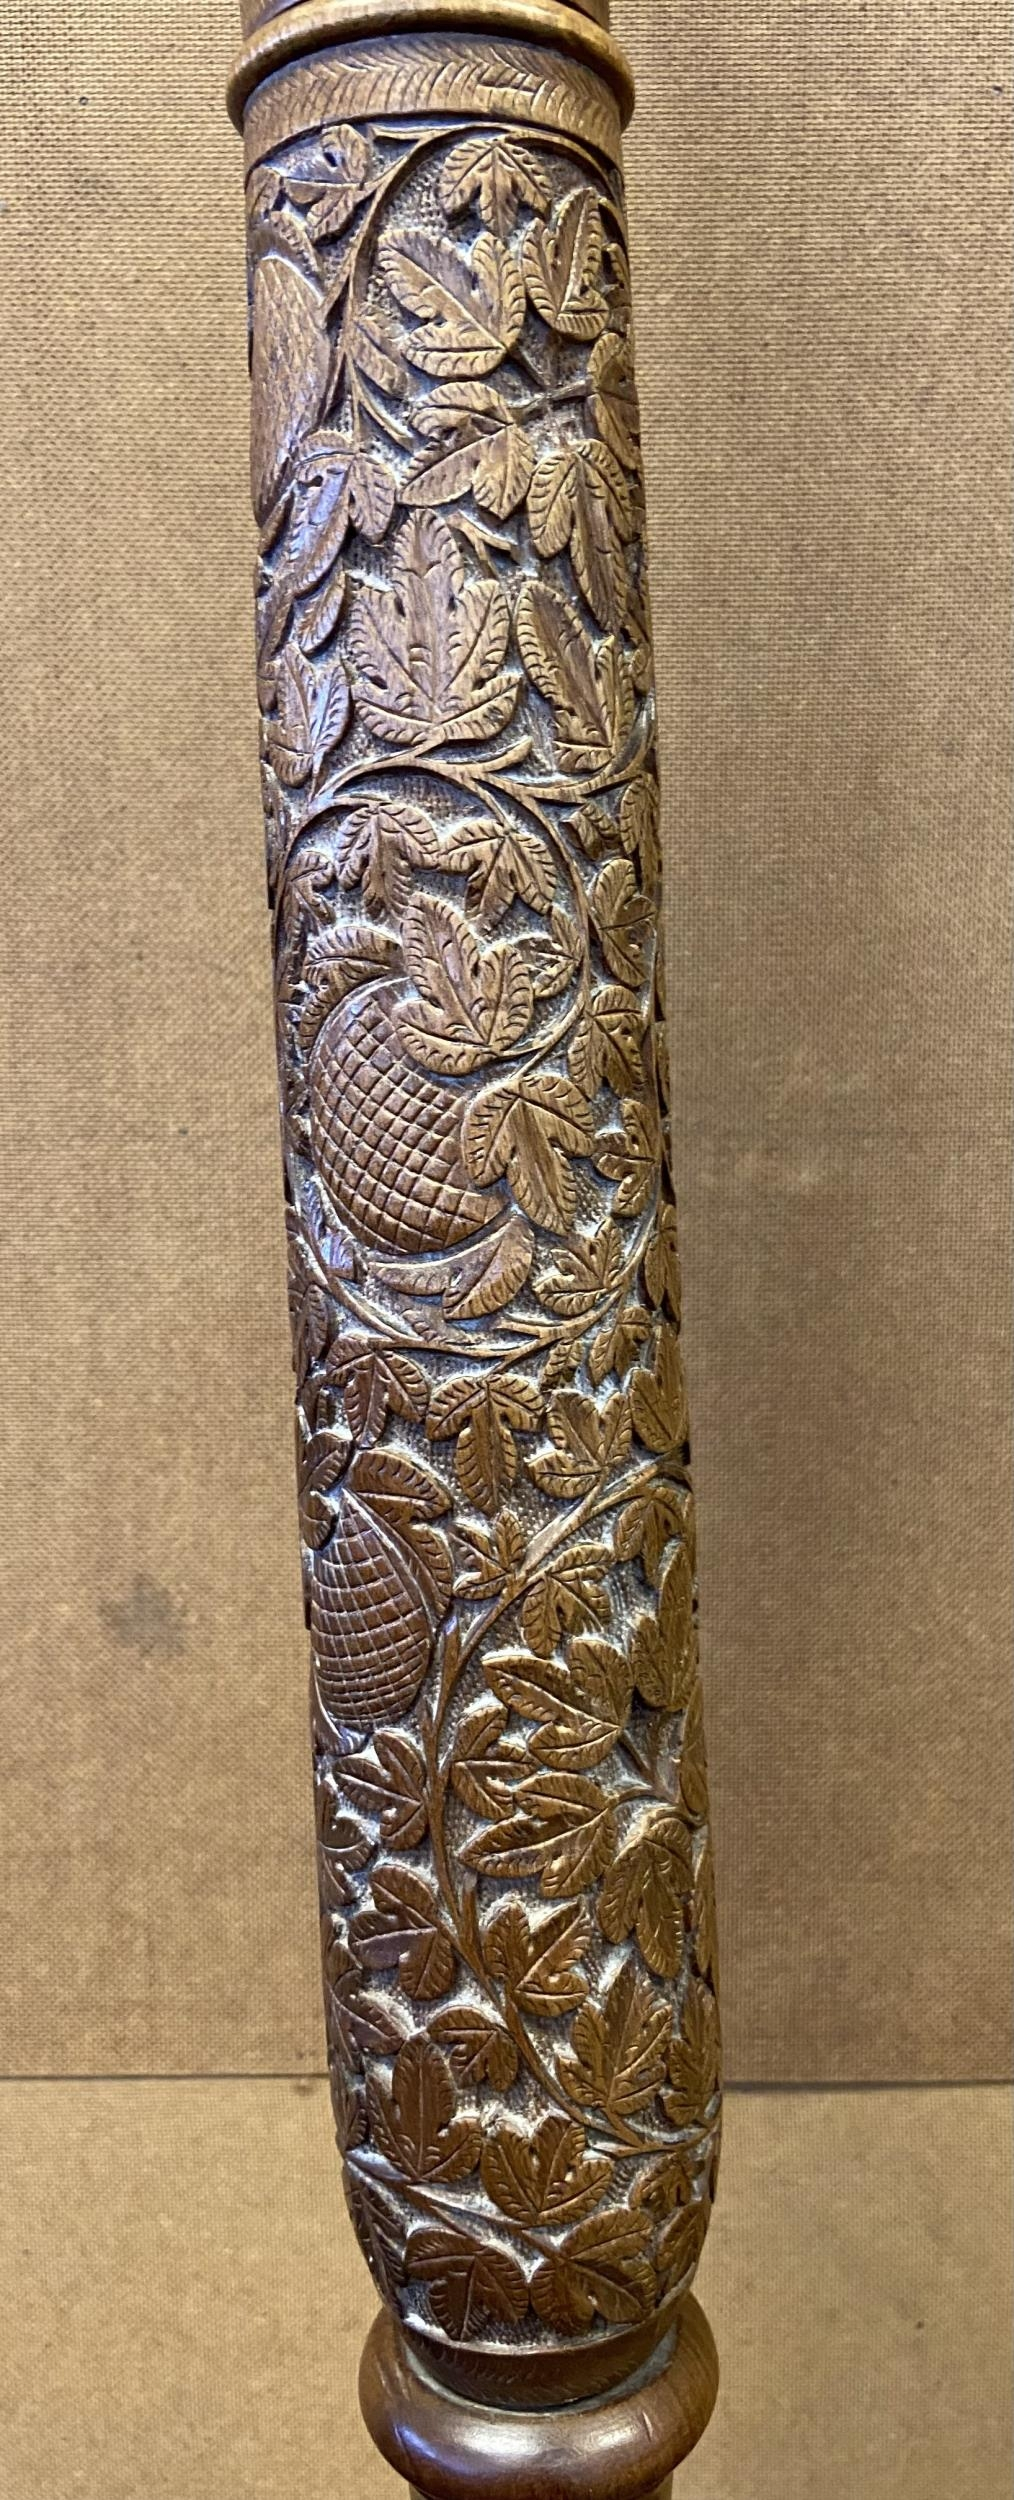 A Hand carved Indian style floor lamp. - Image 3 of 5